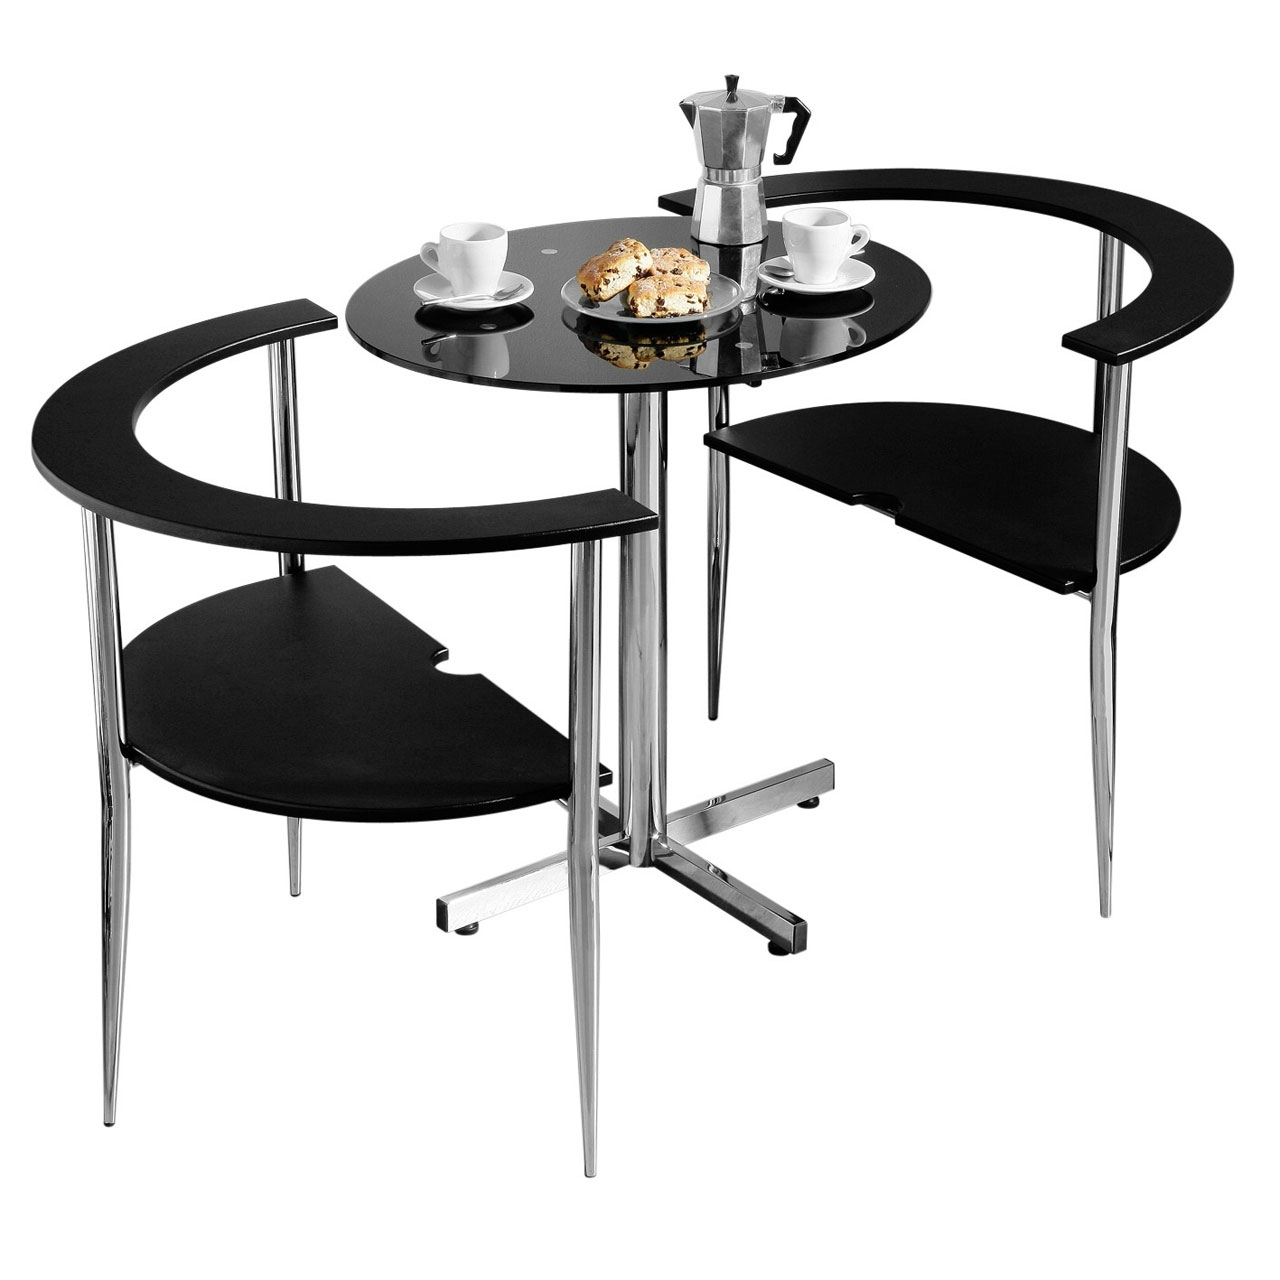 3Pc Round Love Dining Set Black Tempered Glass Table Top 2 Chairs With Regard To Most Popular Dining Tables With 2 Seater (View 2 of 25)